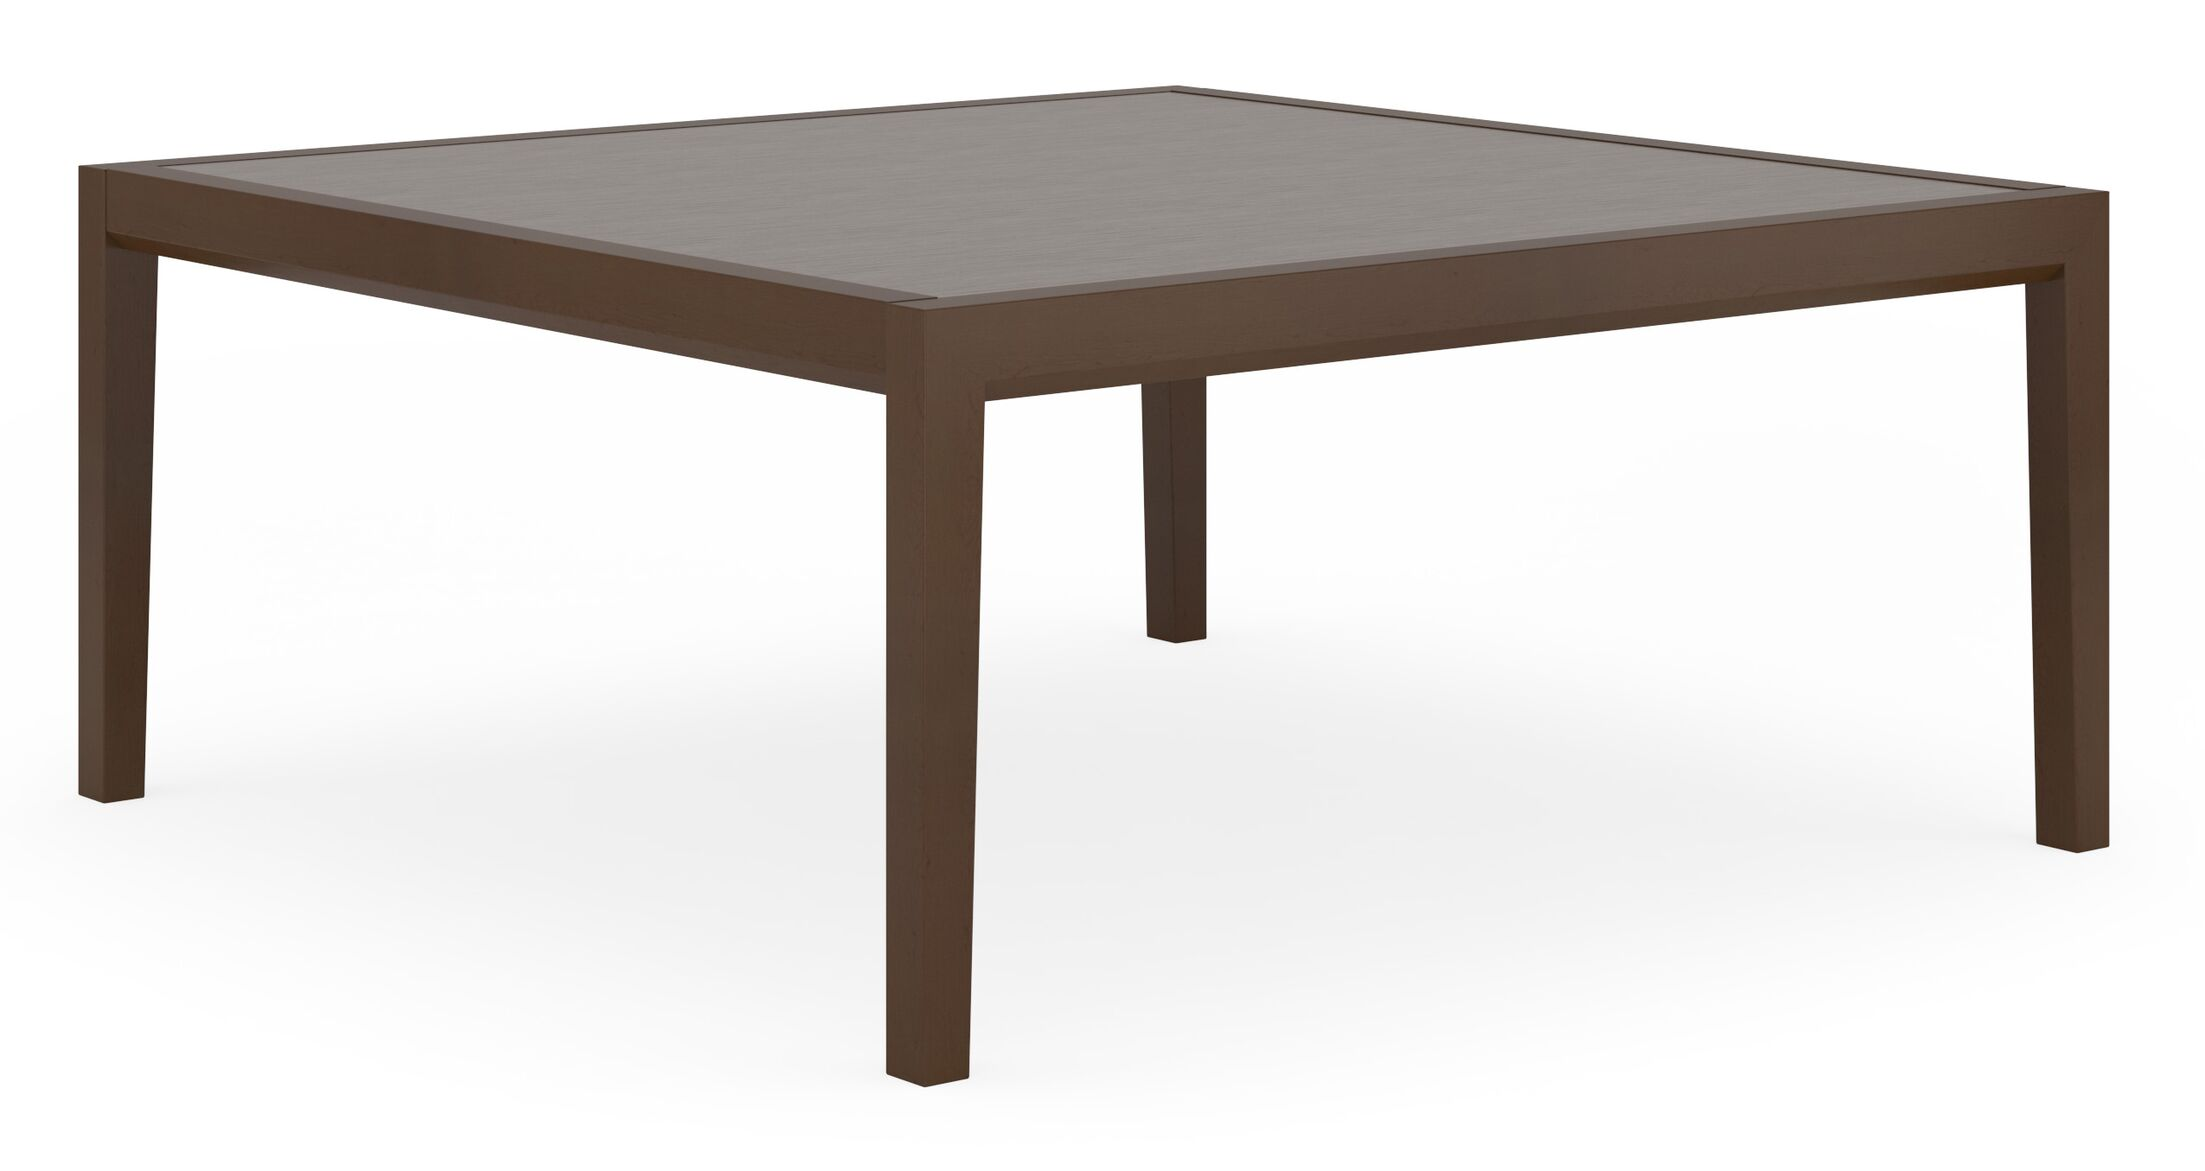 Brooklyn Coffee Table Base Color: Medium, Top Color: Earthen Twill, Size: 36